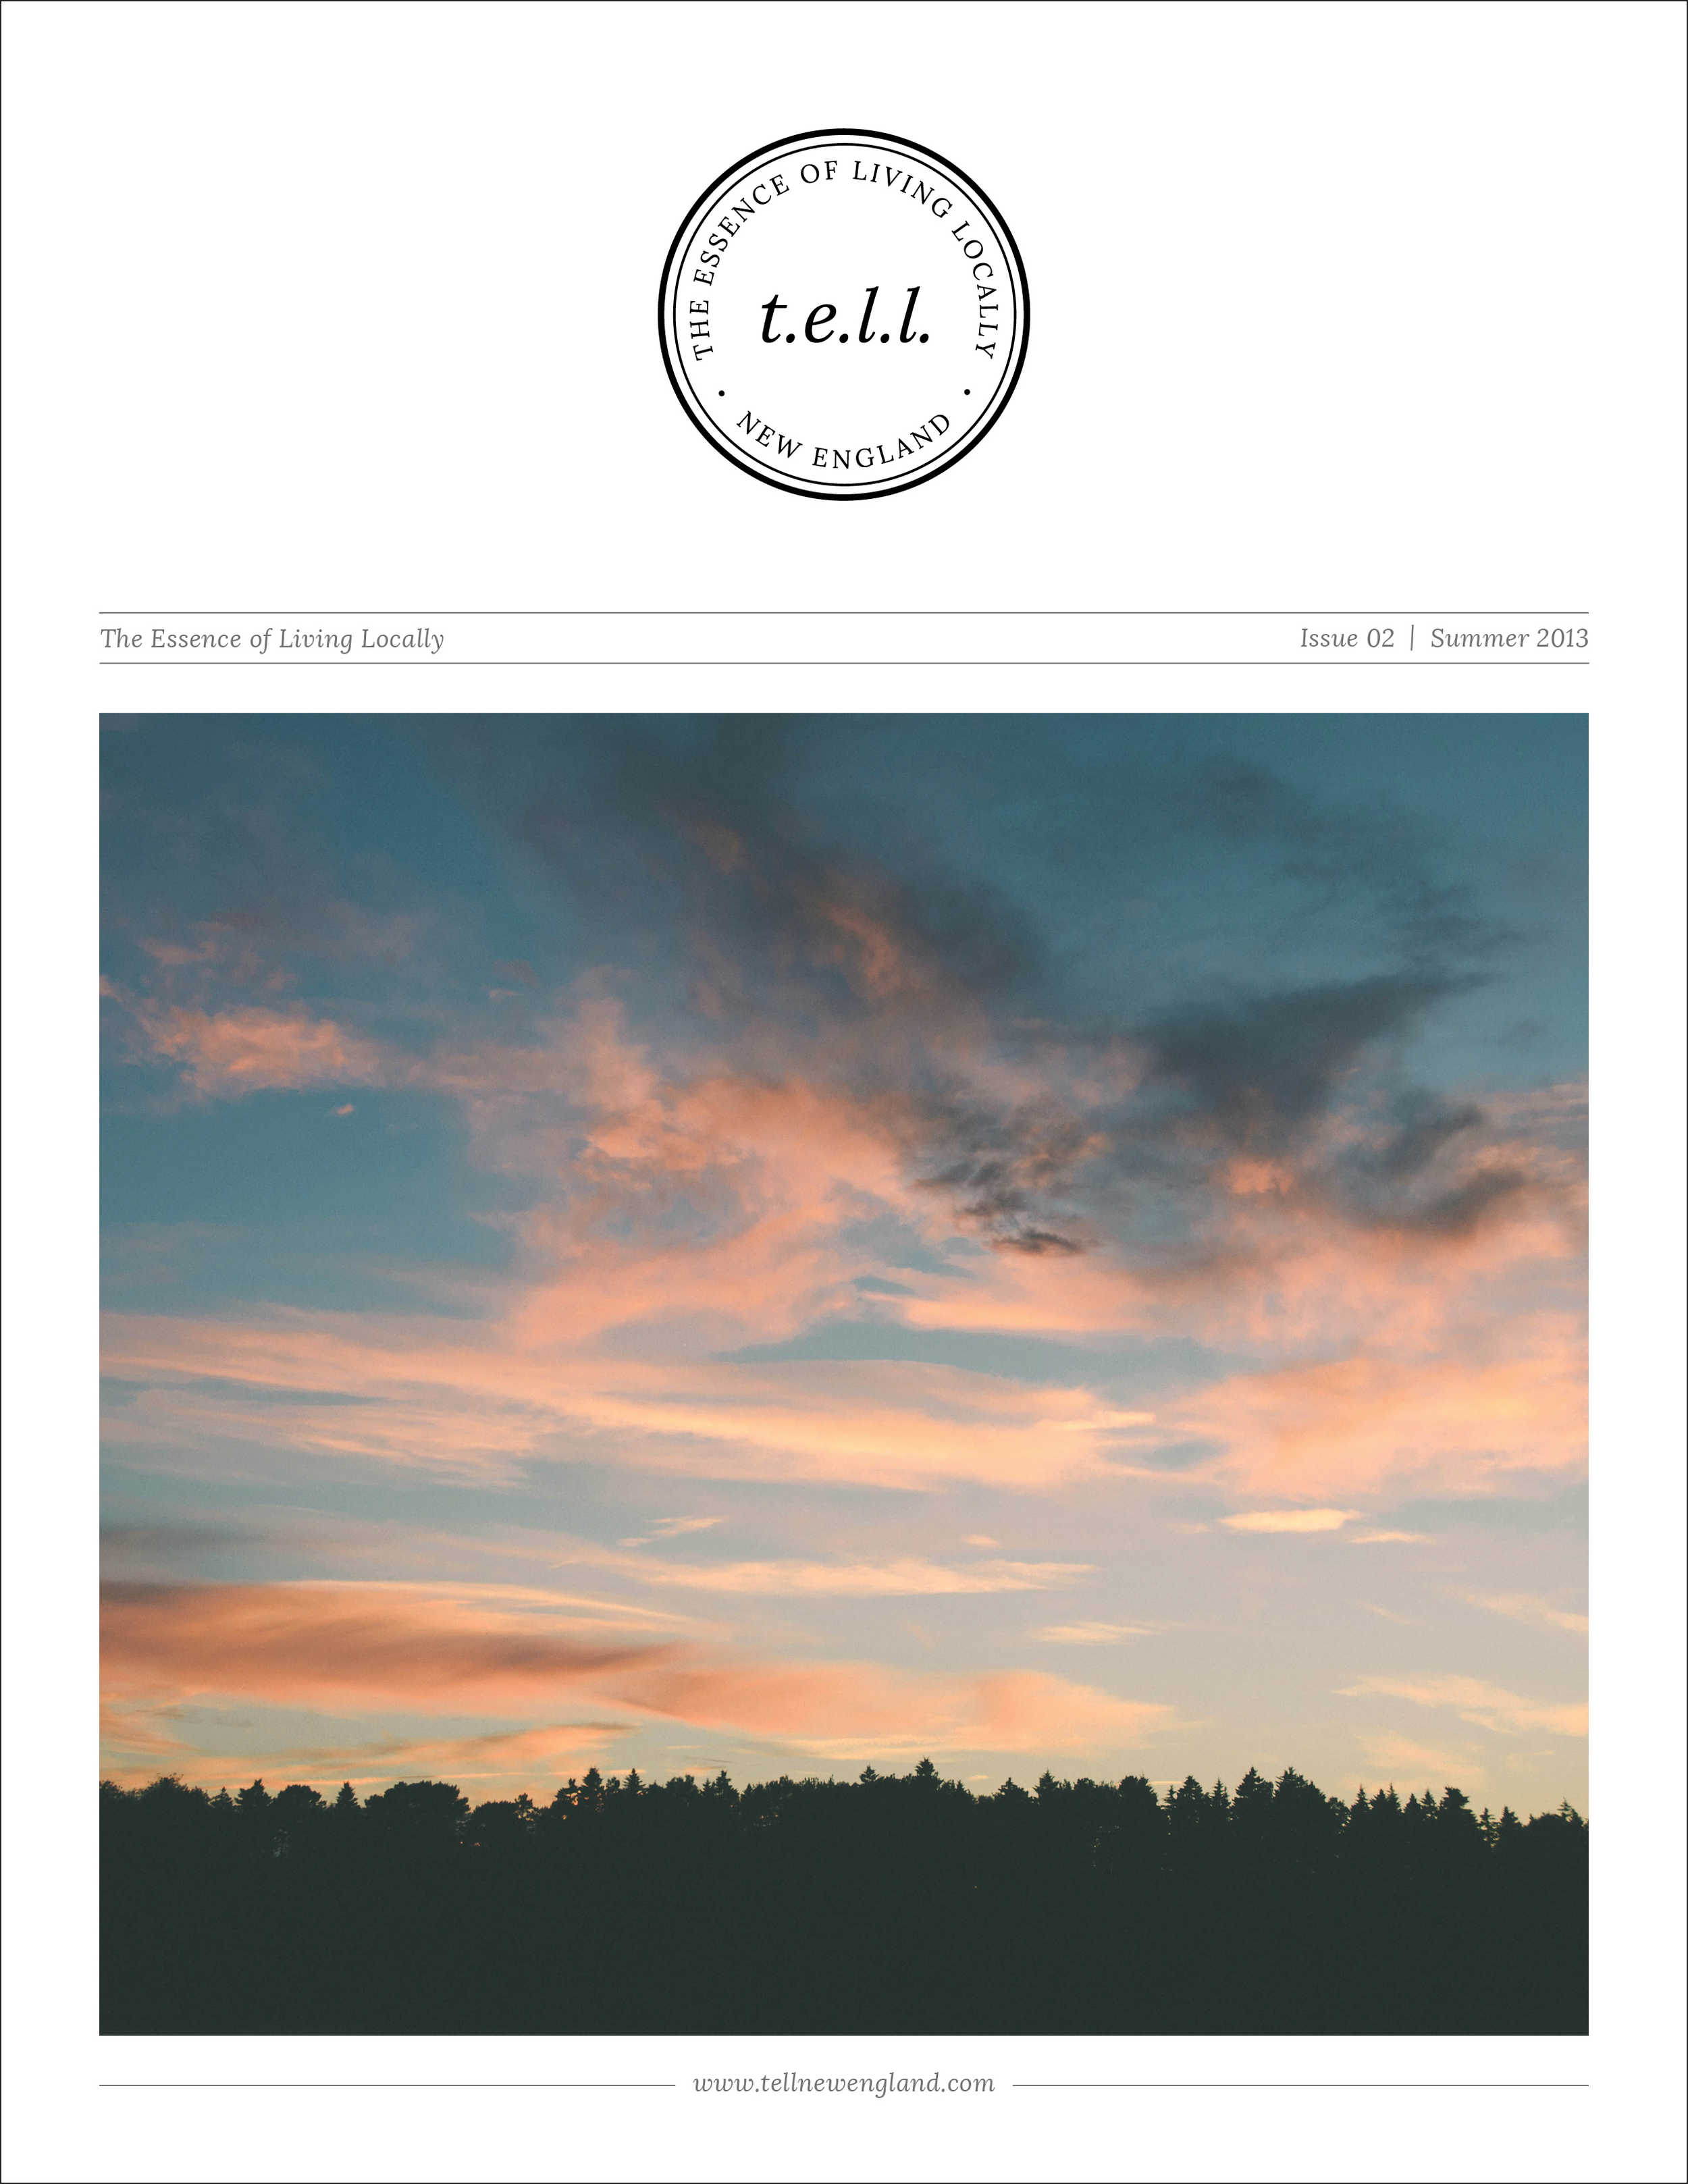 tell_issue02_border.jpg